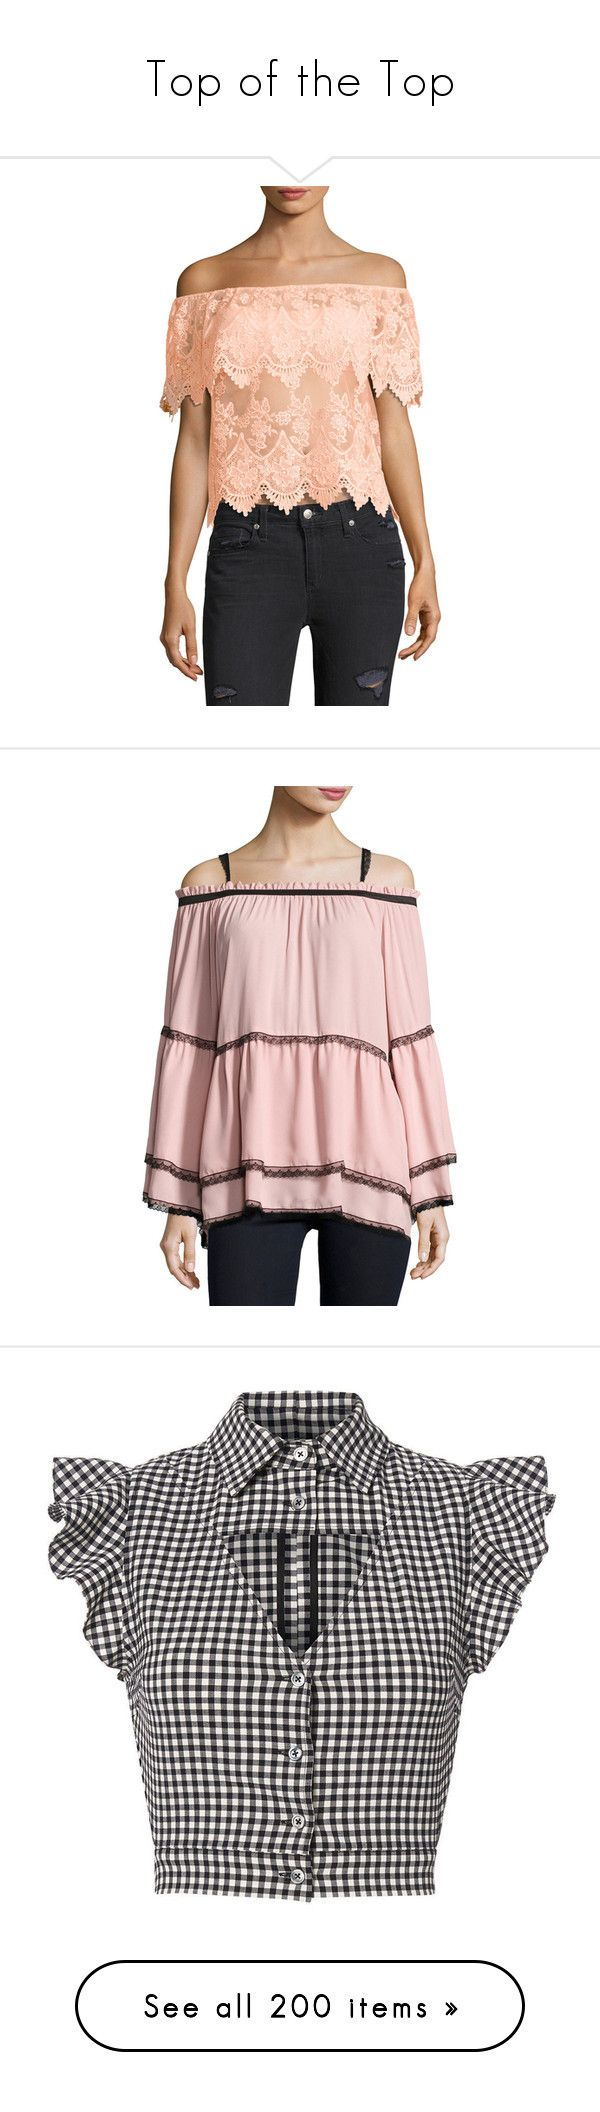 """""""Top of the Top"""" by faeryrain ❤ liked on Polyvore featuring tops, blouses, pink, off-shoulder tops, red blouse, open back blouse, pink lace blouse, red off the shoulder top, pink lace top and long sleeve lace top"""